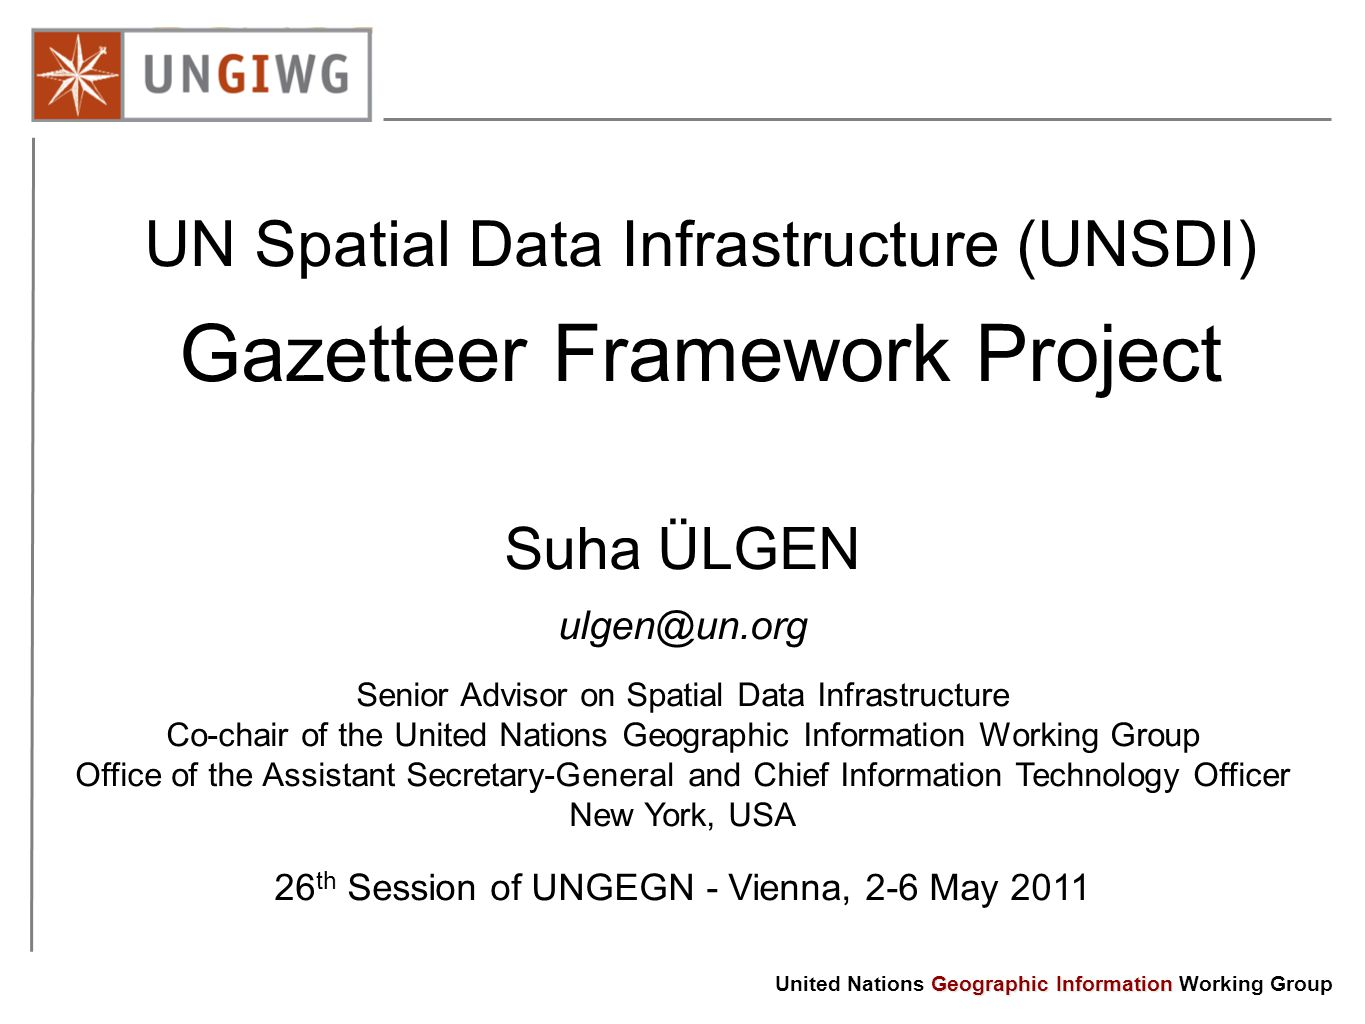 Geographic Information United Nations Geographic Information Working Group UN Spatial Data Infrastructure (UNSDI) Gazetteer Framework Project Suha ÜLGEN Senior Advisor on Spatial Data Infrastructure Co-chair of the United Nations Geographic Information Working Group Office of the Assistant Secretary-General and Chief Information Technology Officer New York, USA 26 th Session of UNGEGN - Vienna, 2-6 May 2011